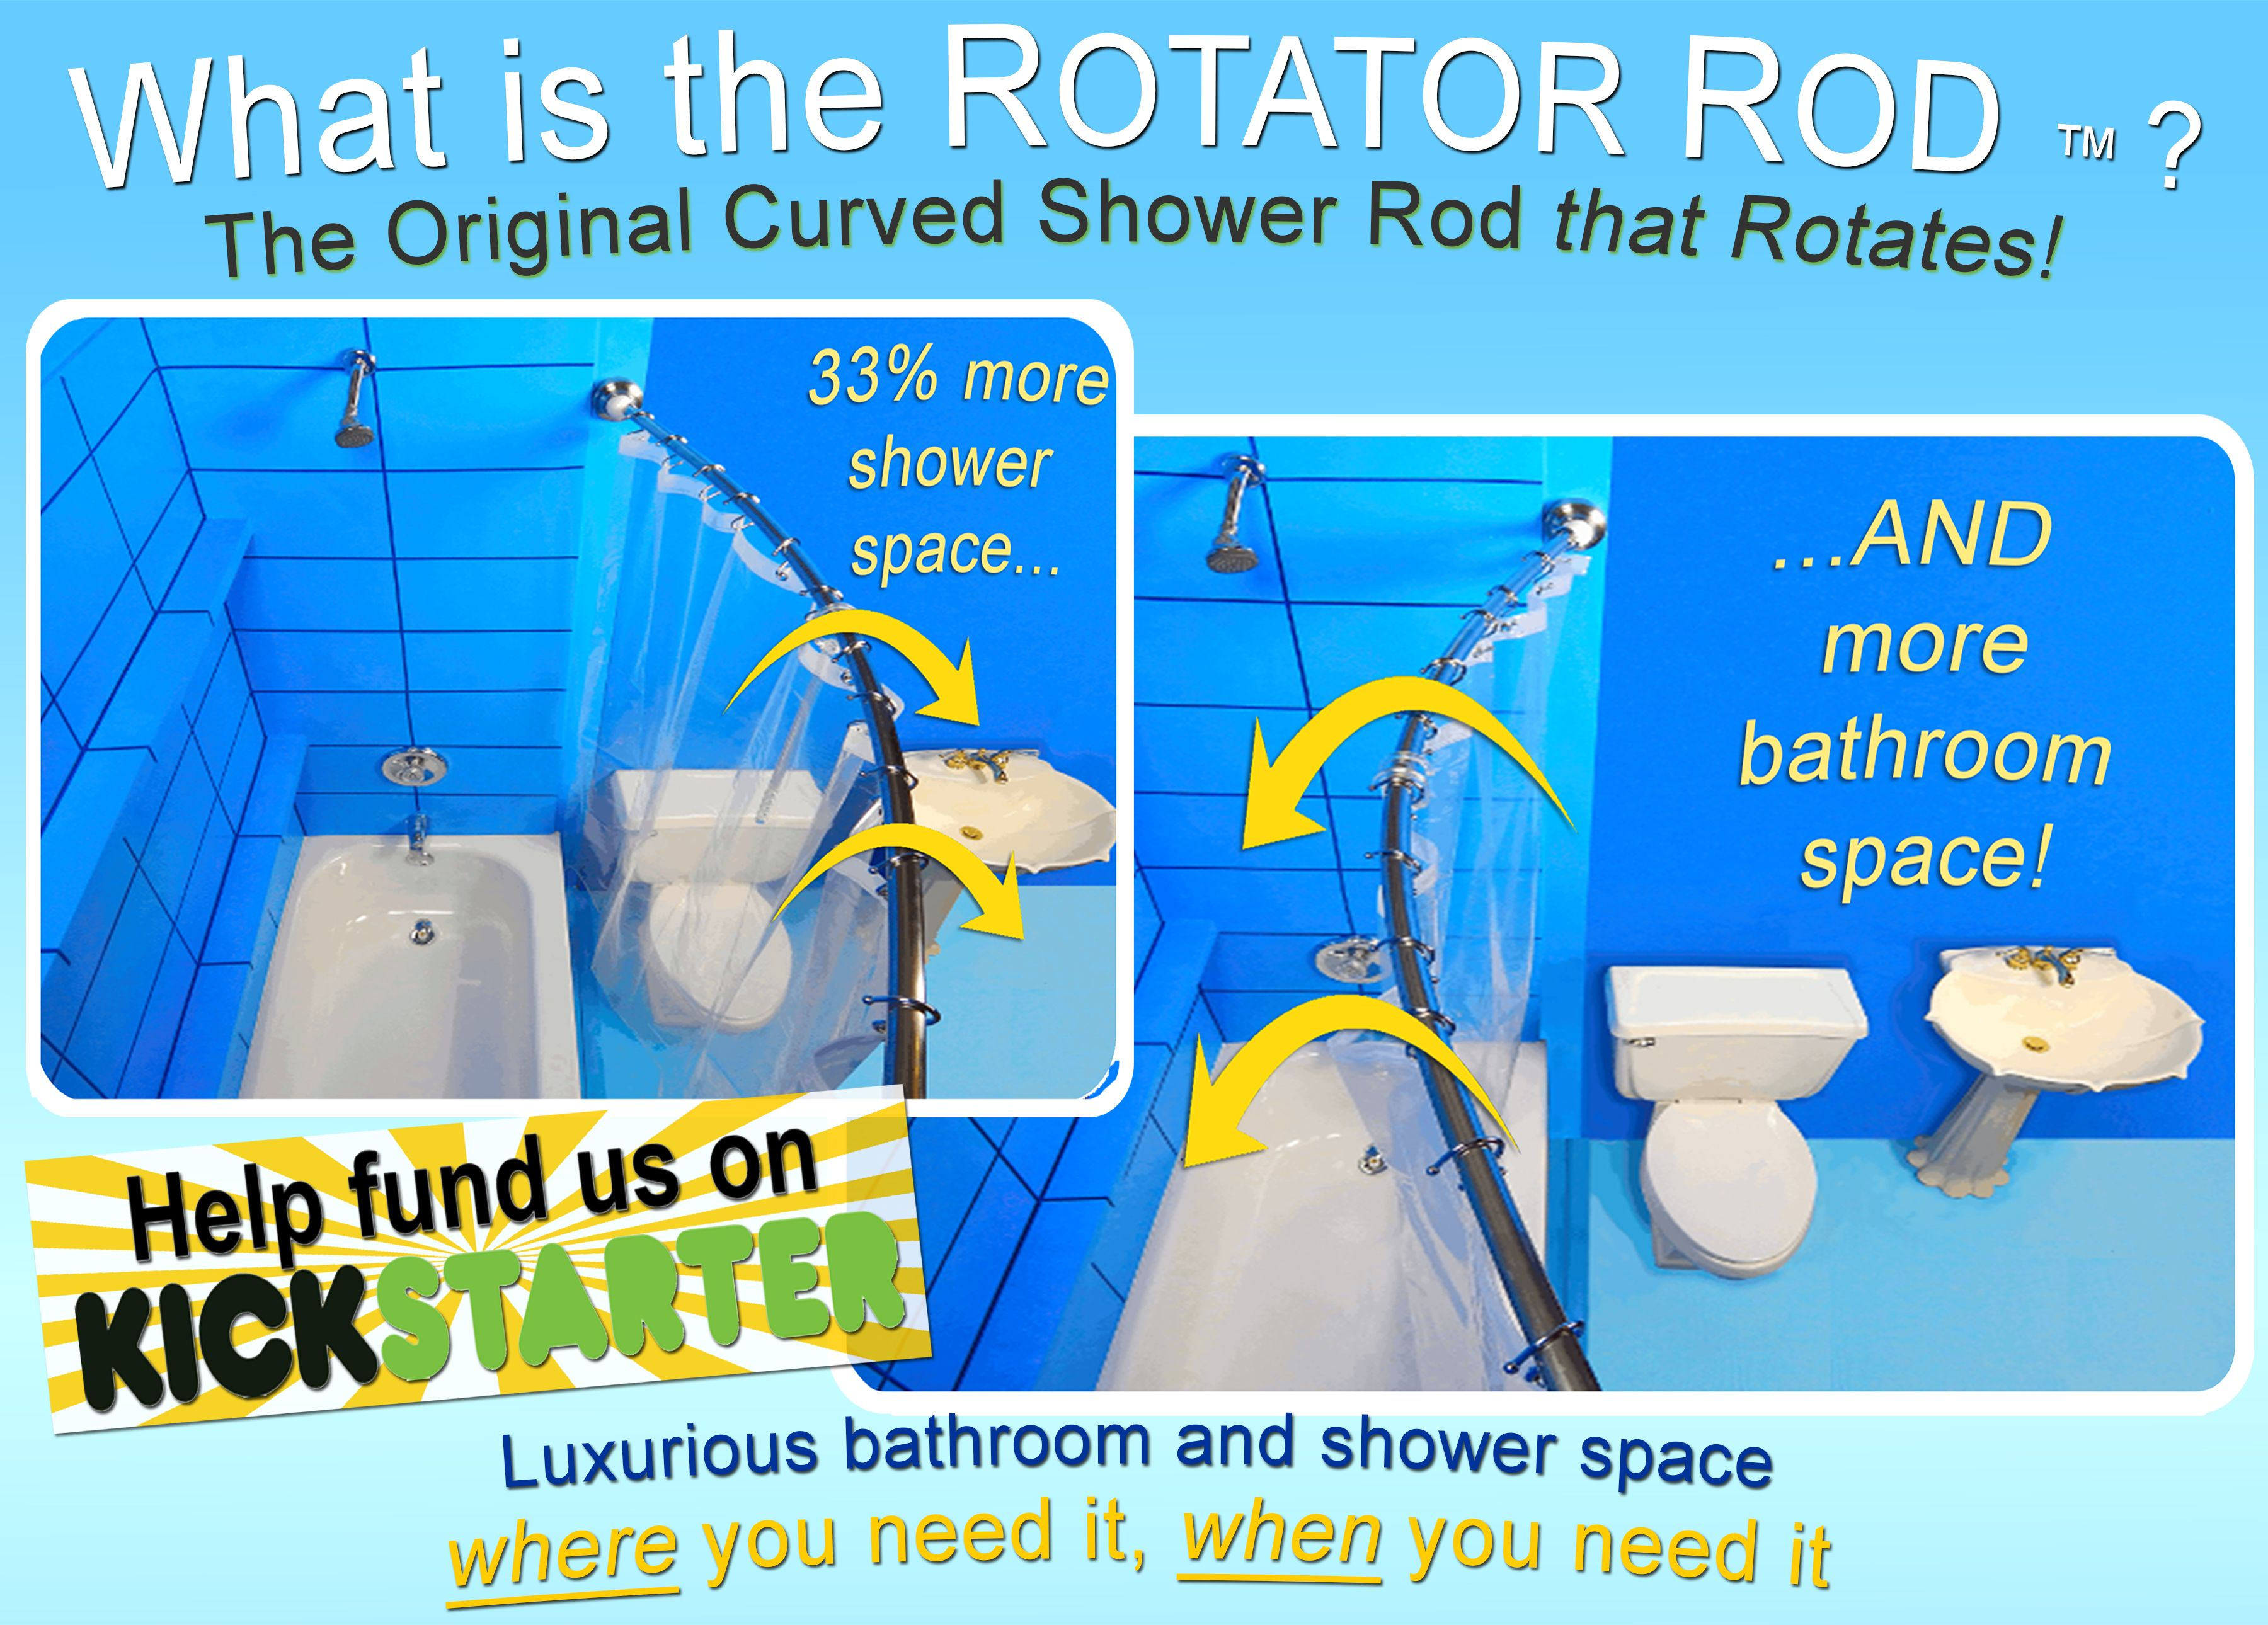 The Curved Shower Rod Solved Half The Problem Now The Rotator Rod Solved The Rest I Woke Up One Morning In A Bad Mood My Dail With Images Shower Rod